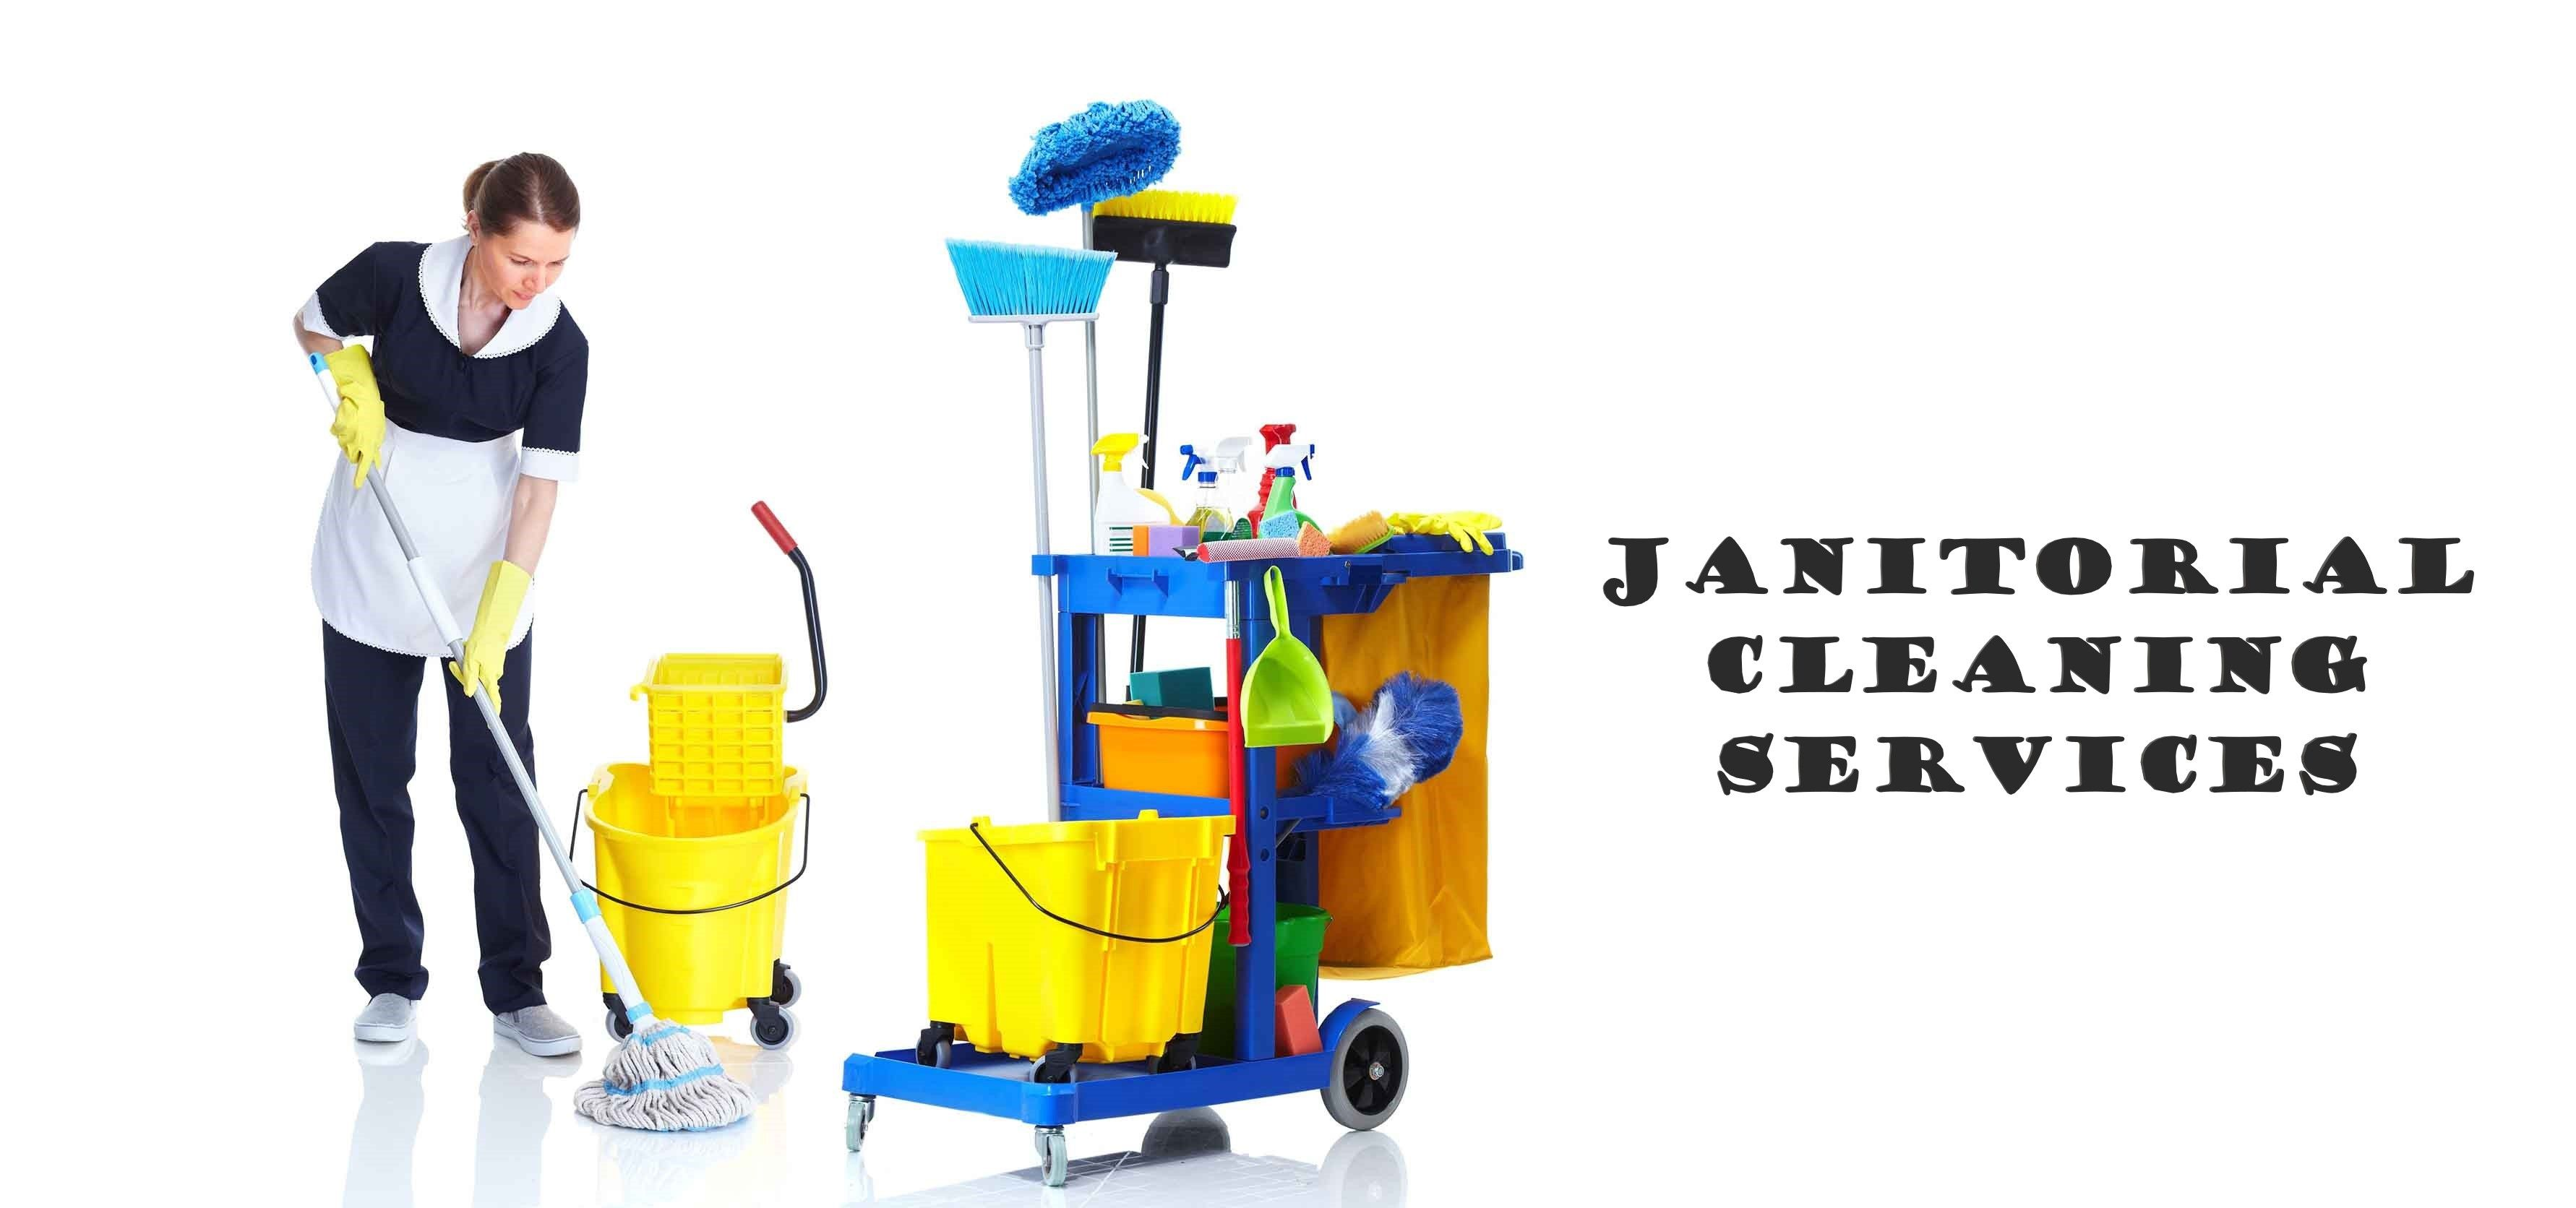 Janitorial Cleaning Services in Europe House cleaning